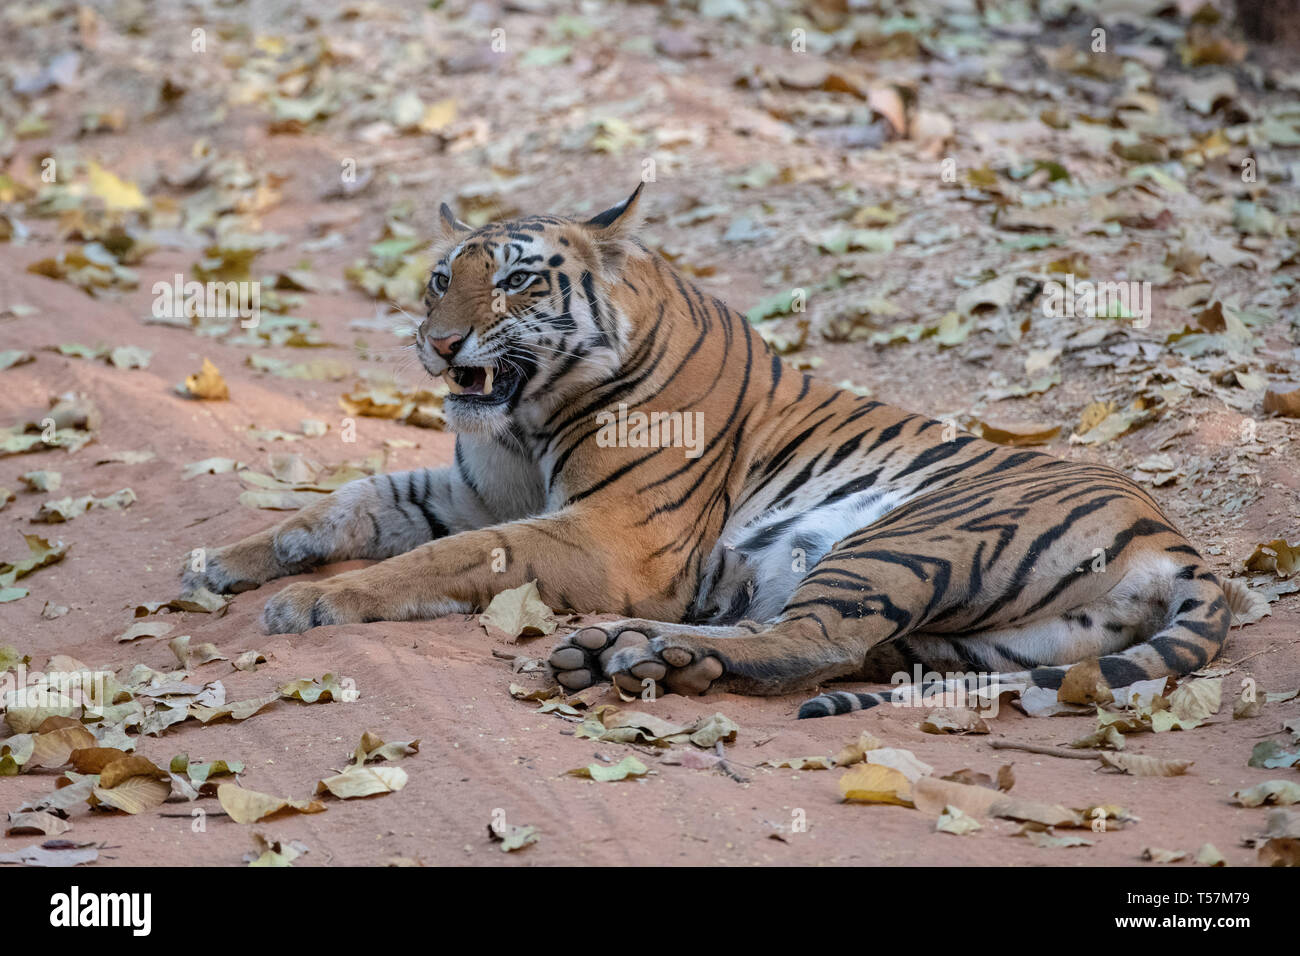 Bengal Tiger lying on forest floor  snarling - Stock Image